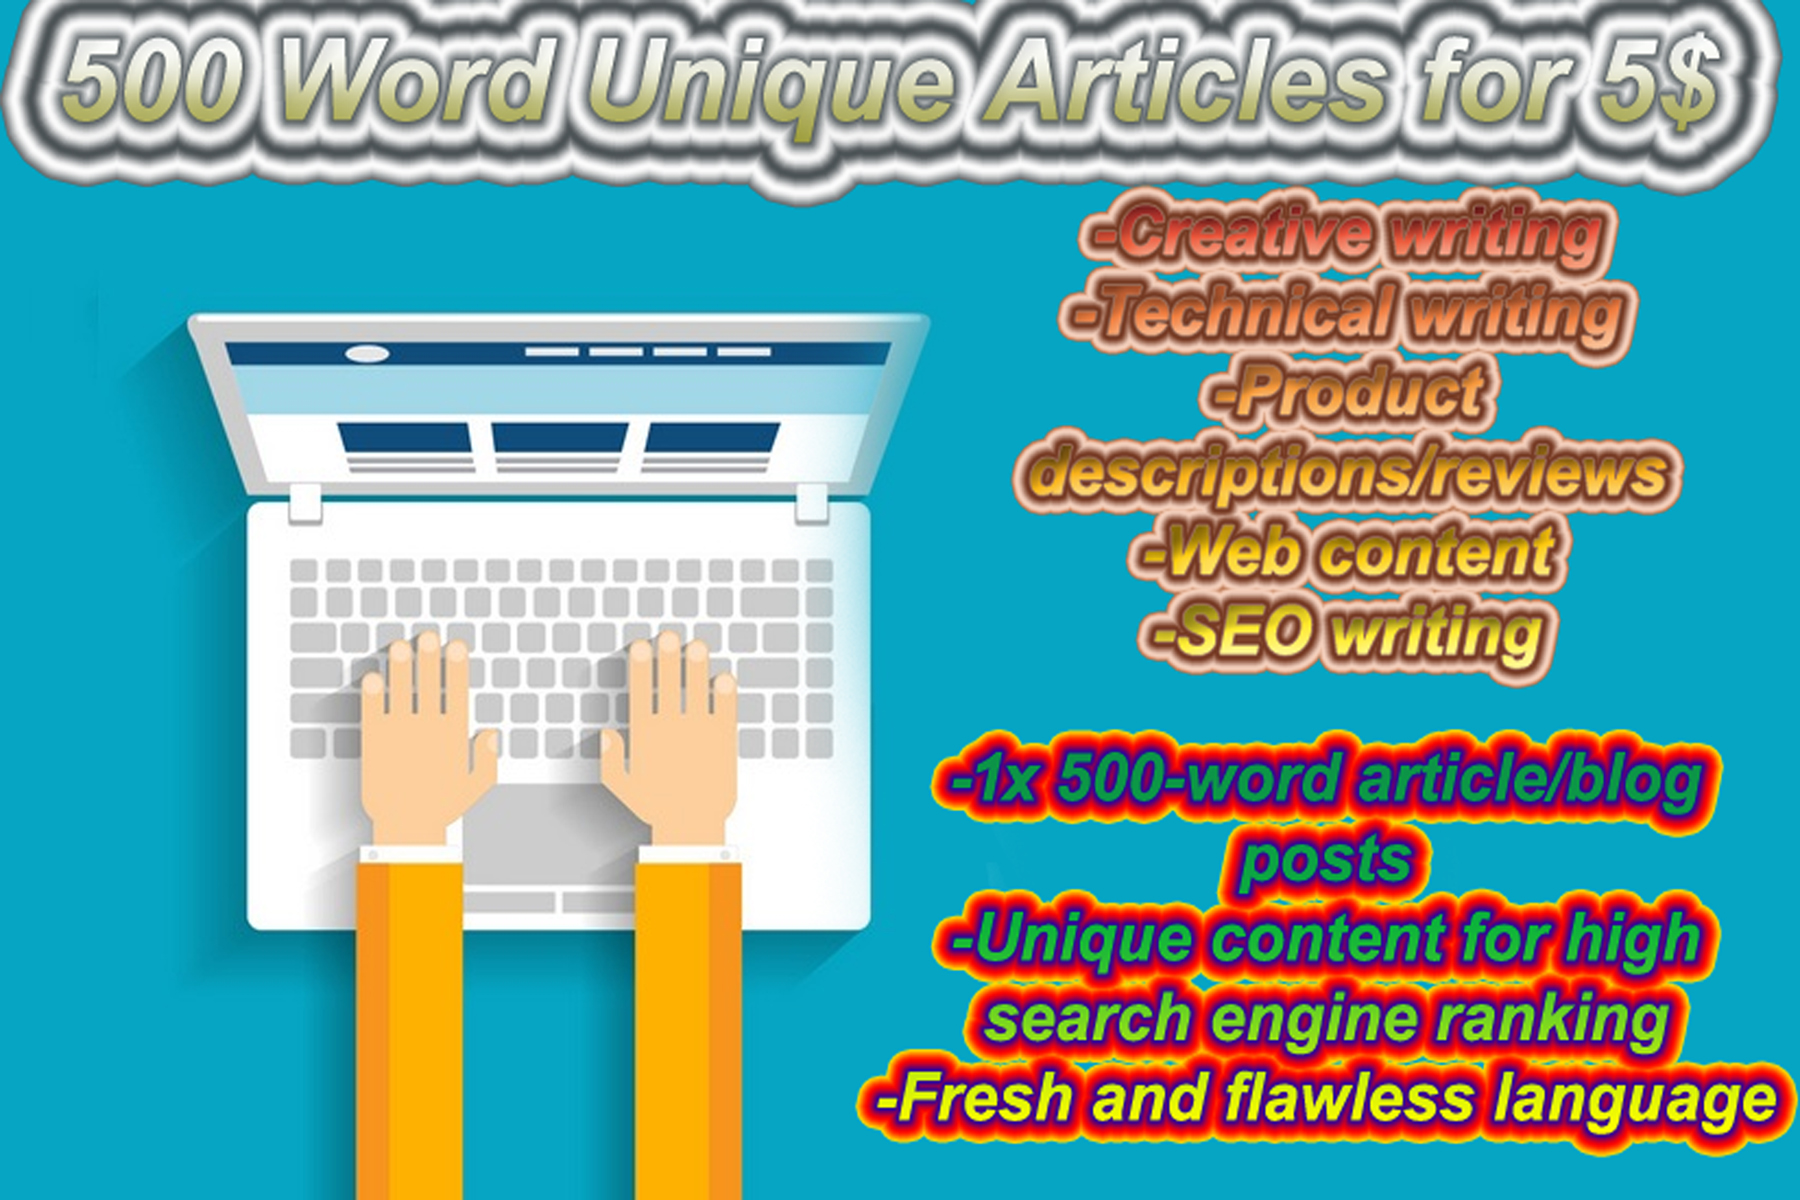 550 words Content That Add Value To Audience/Any Niches @$3